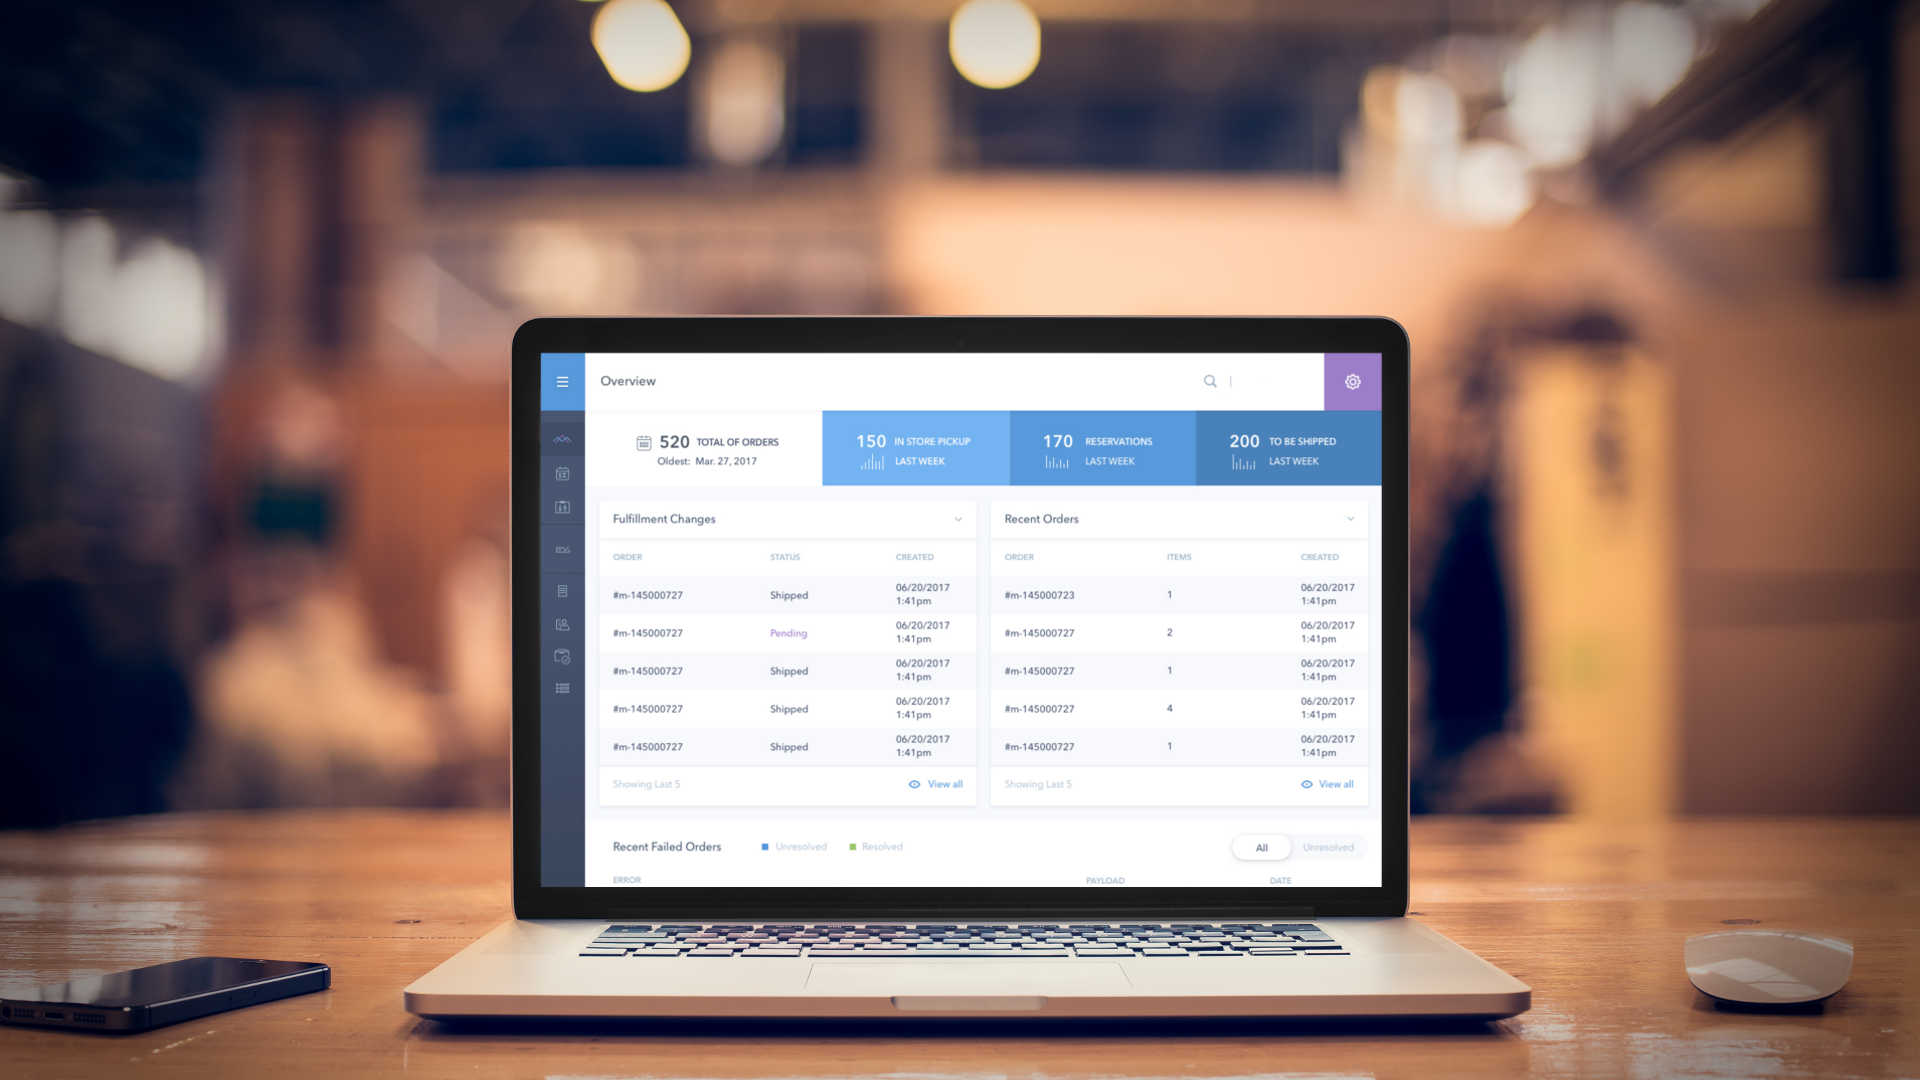 order management system plans and pricing